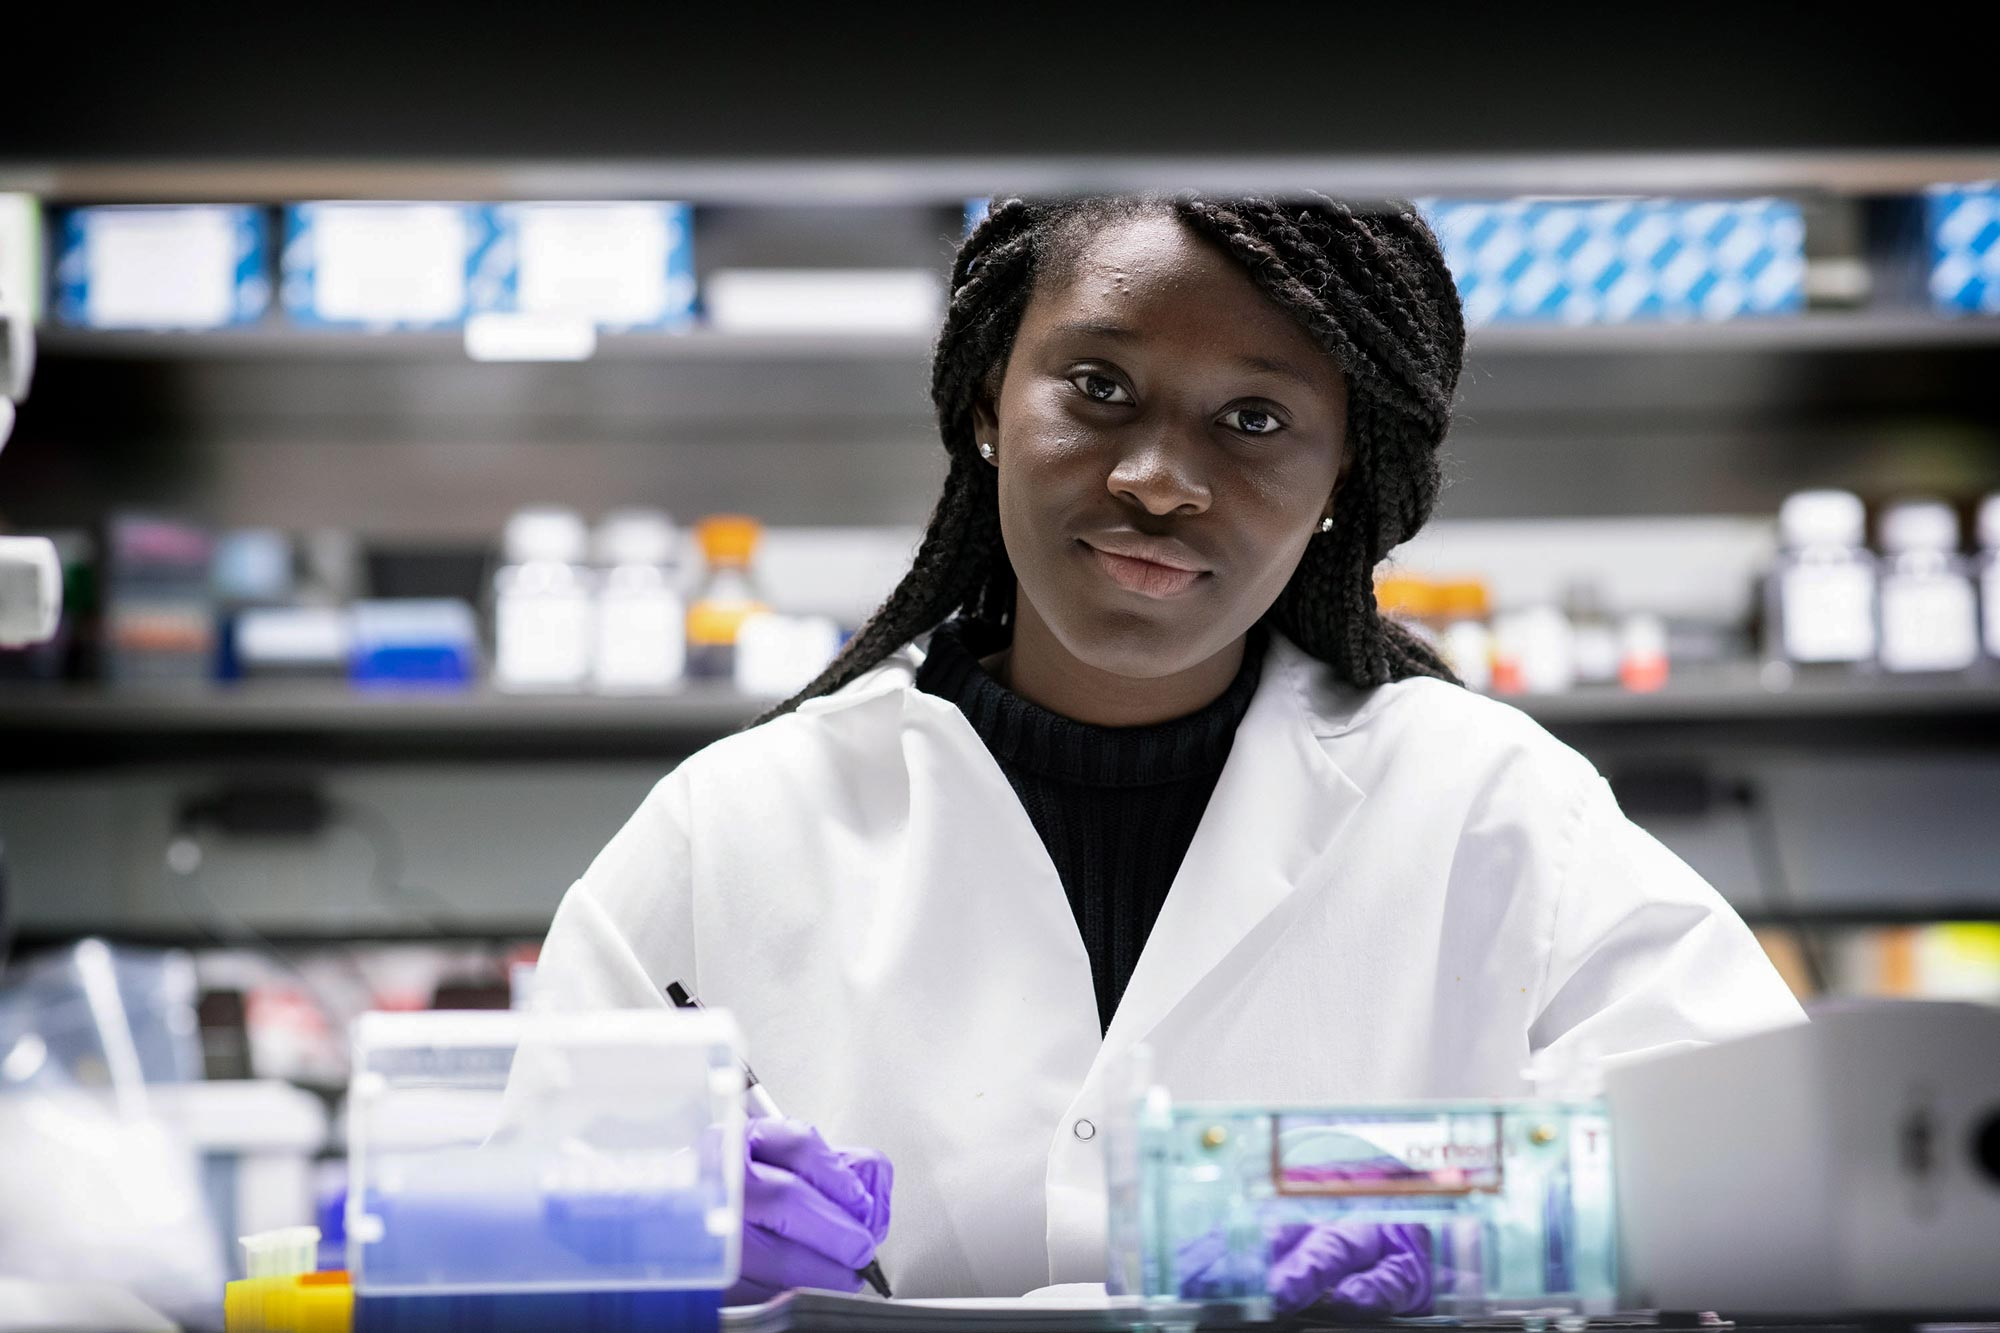 First-Year Lab Experience Gave This Student the Confidence to Aim for a Ph.D.